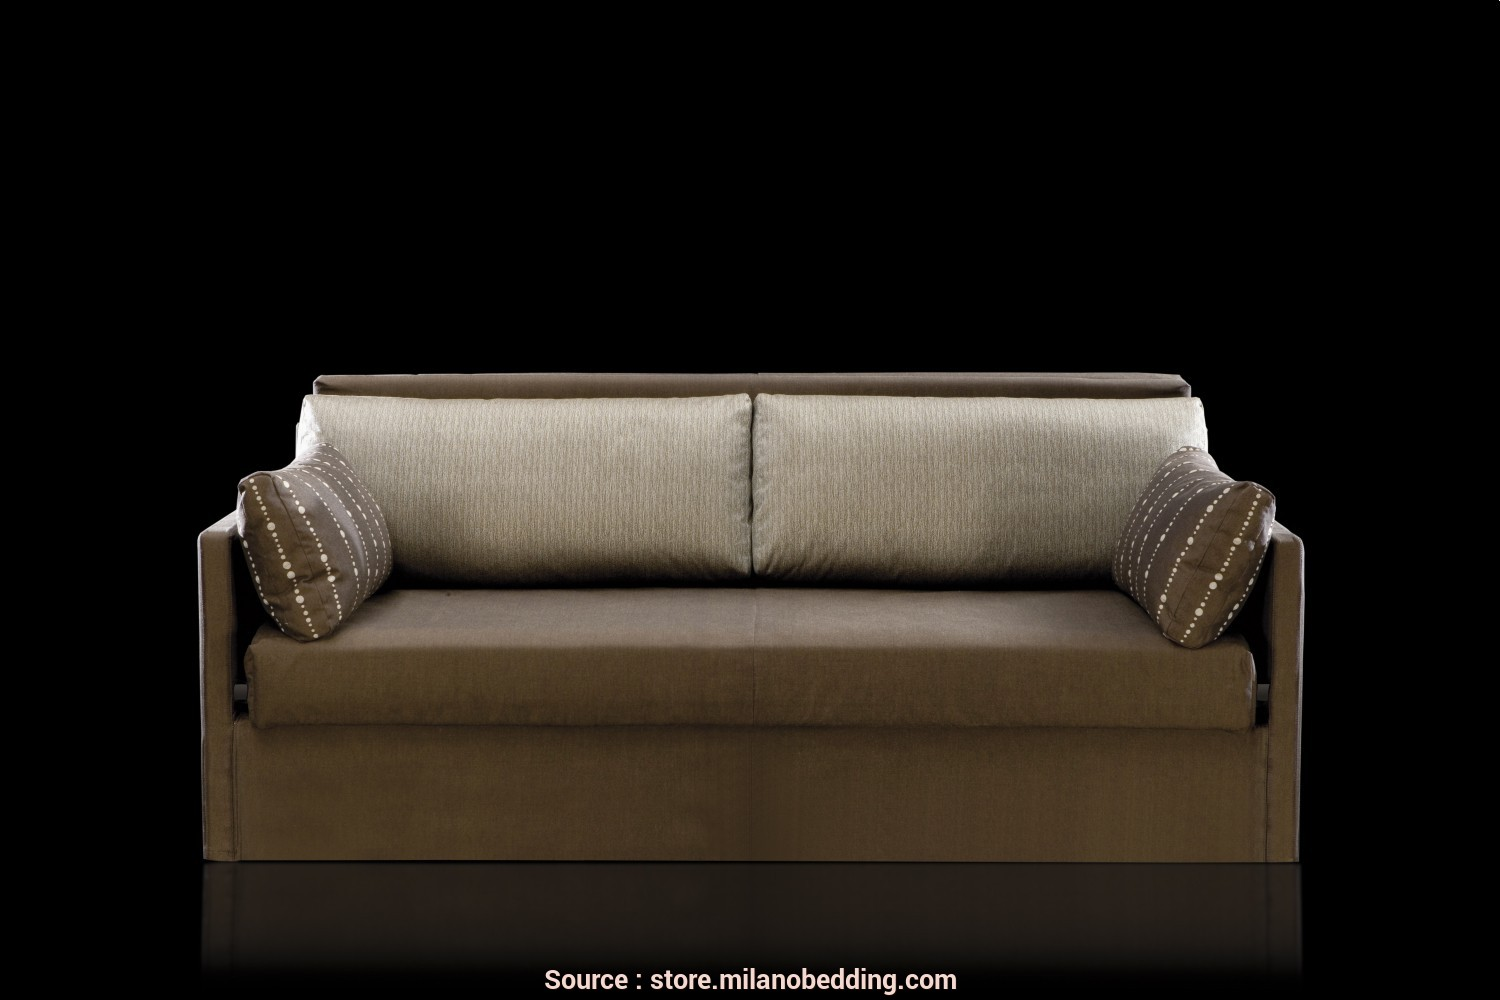 Divano Letto Castello,, Sofa Bunk, Price, Locale George Sofa Bunk, Available As A 3-Seater Or Maxi 3-Seater